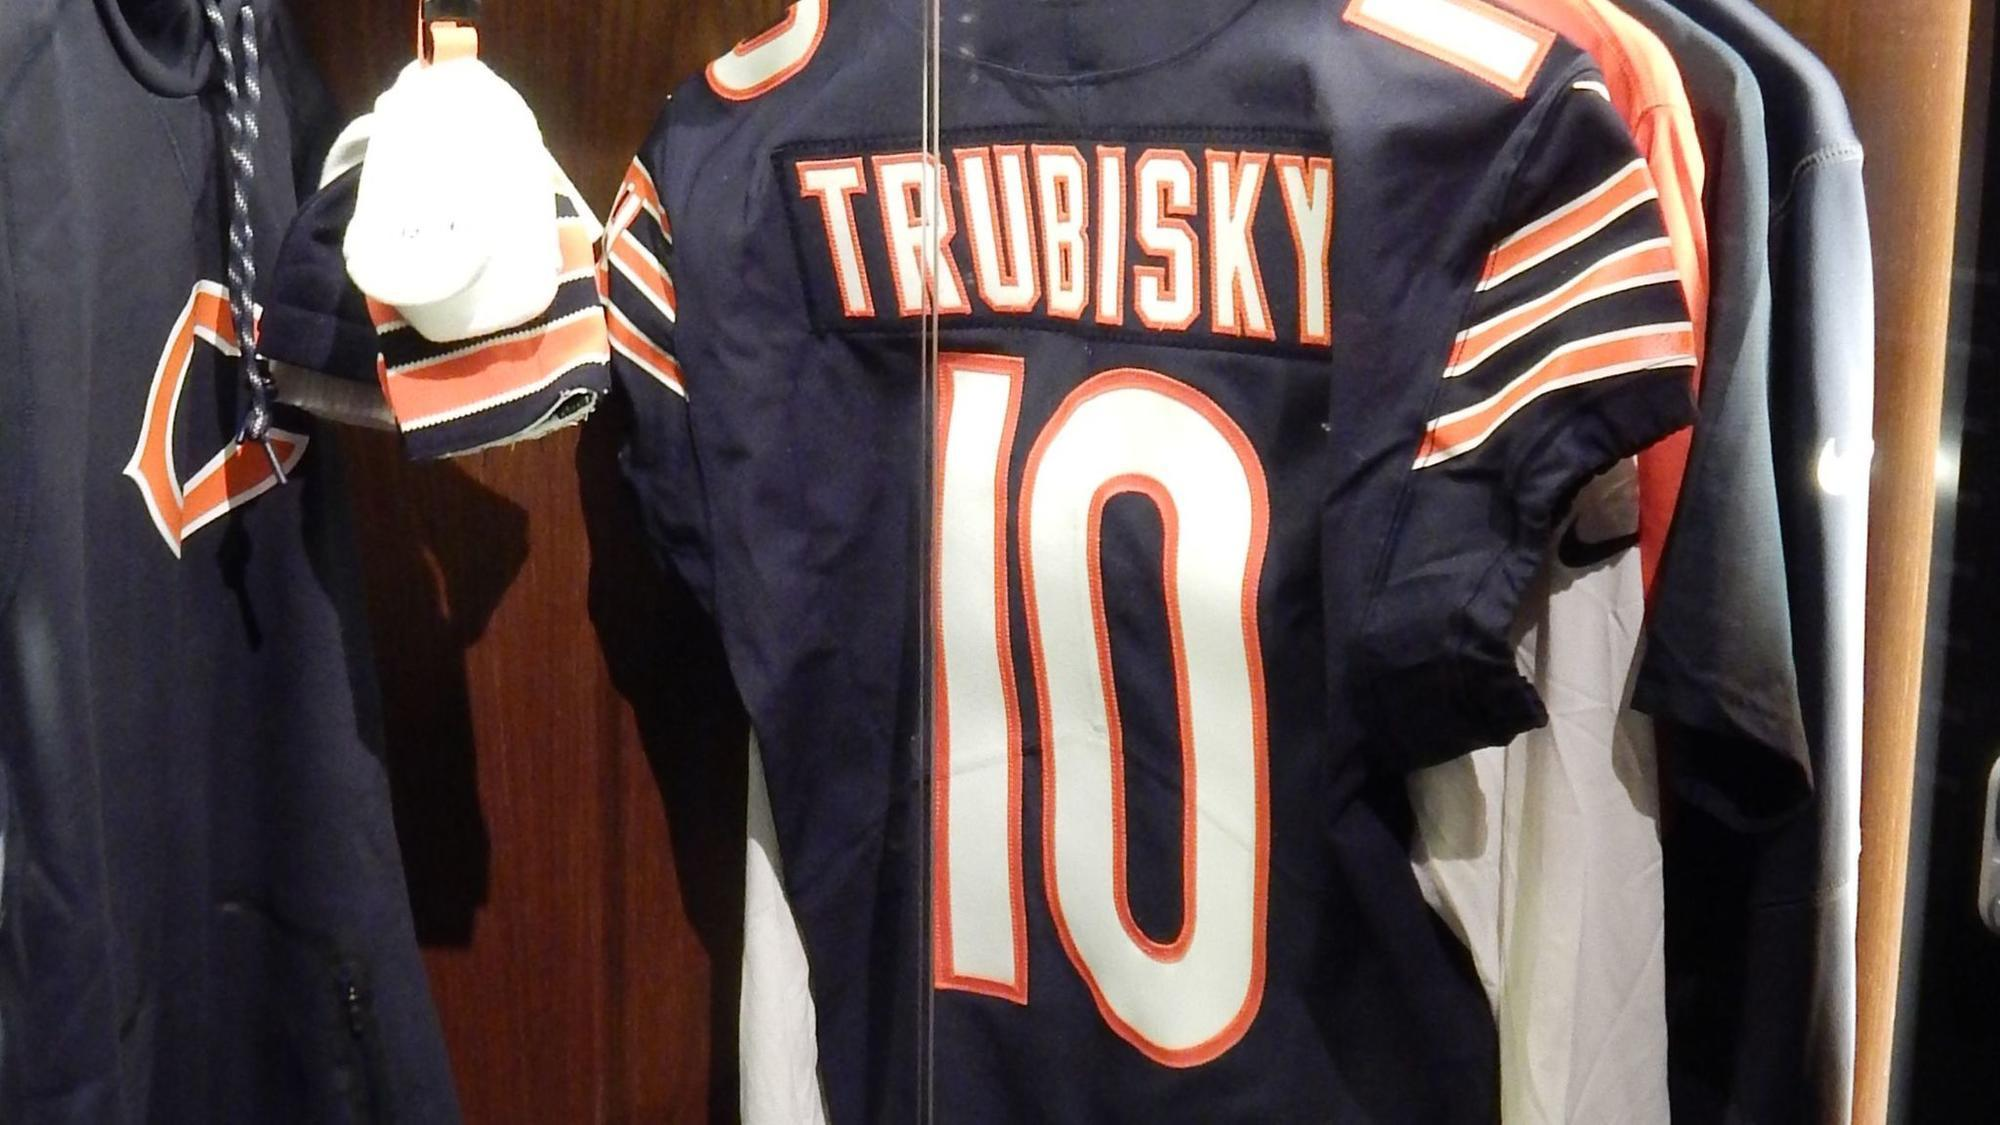 269853d3699 Mitch Trubisky (well, his jersey) is in the Pro Football Hall of .